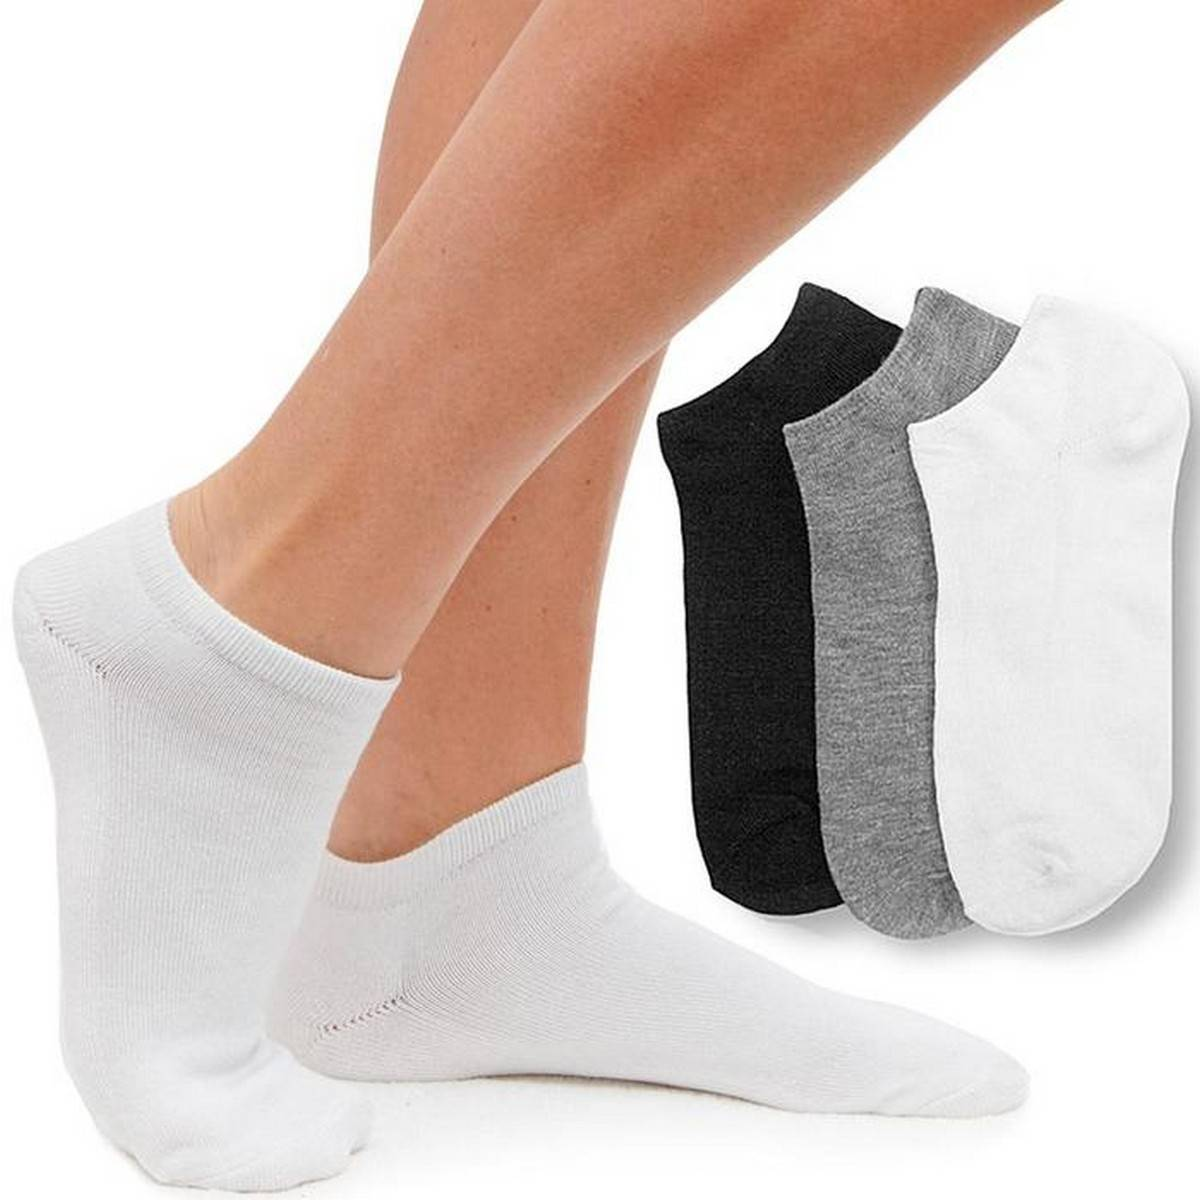 3 PAIRS OF ANKLE SOCKS | FOR ALL WEATHERS | 3 COLORS